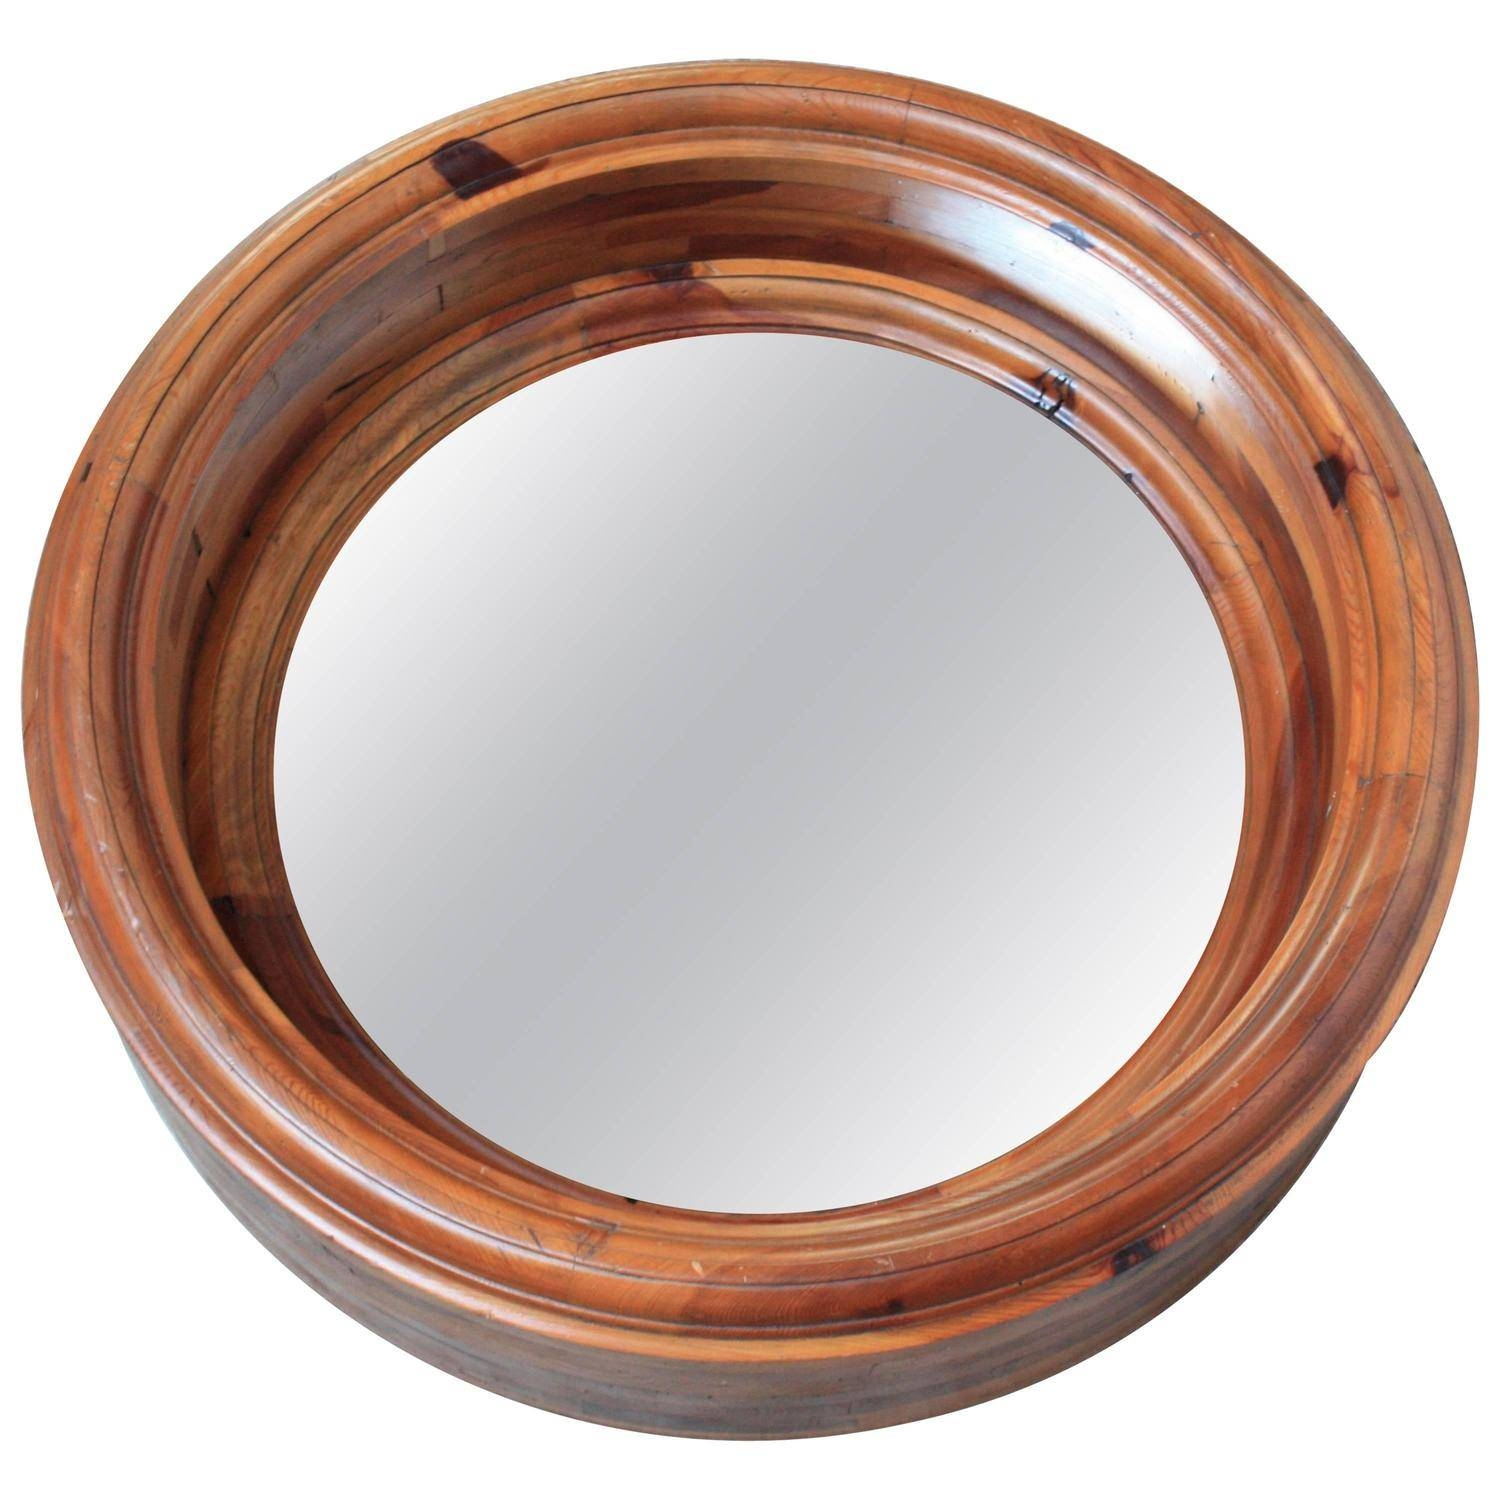 Large Wooden Porthole Mirrorralph Lauren For Sale At 1Stdibs with regard to Porthole Mirrors (Image 3 of 15)